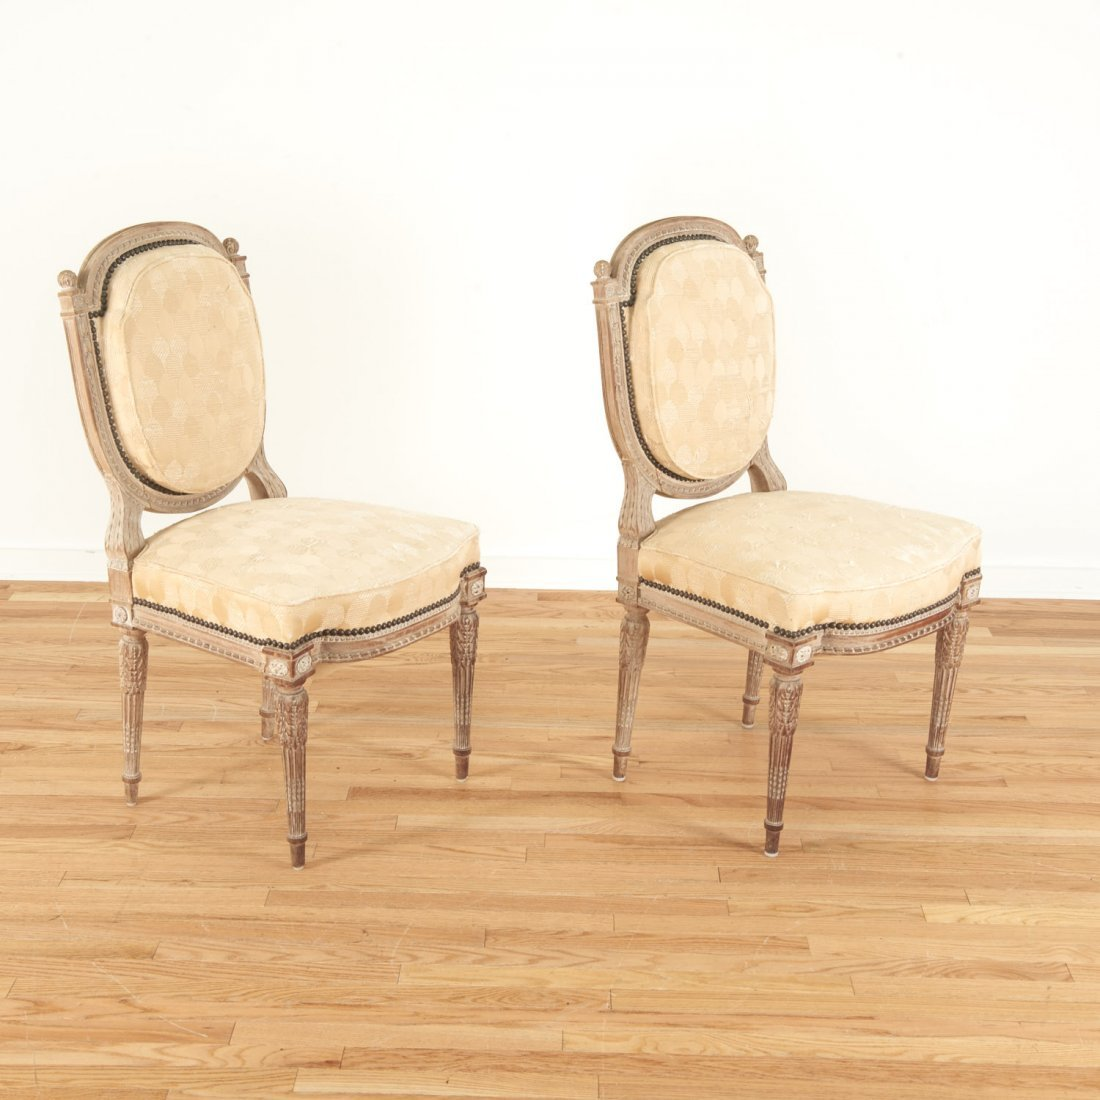 Pair Directoire style limed wood side chairs - 2